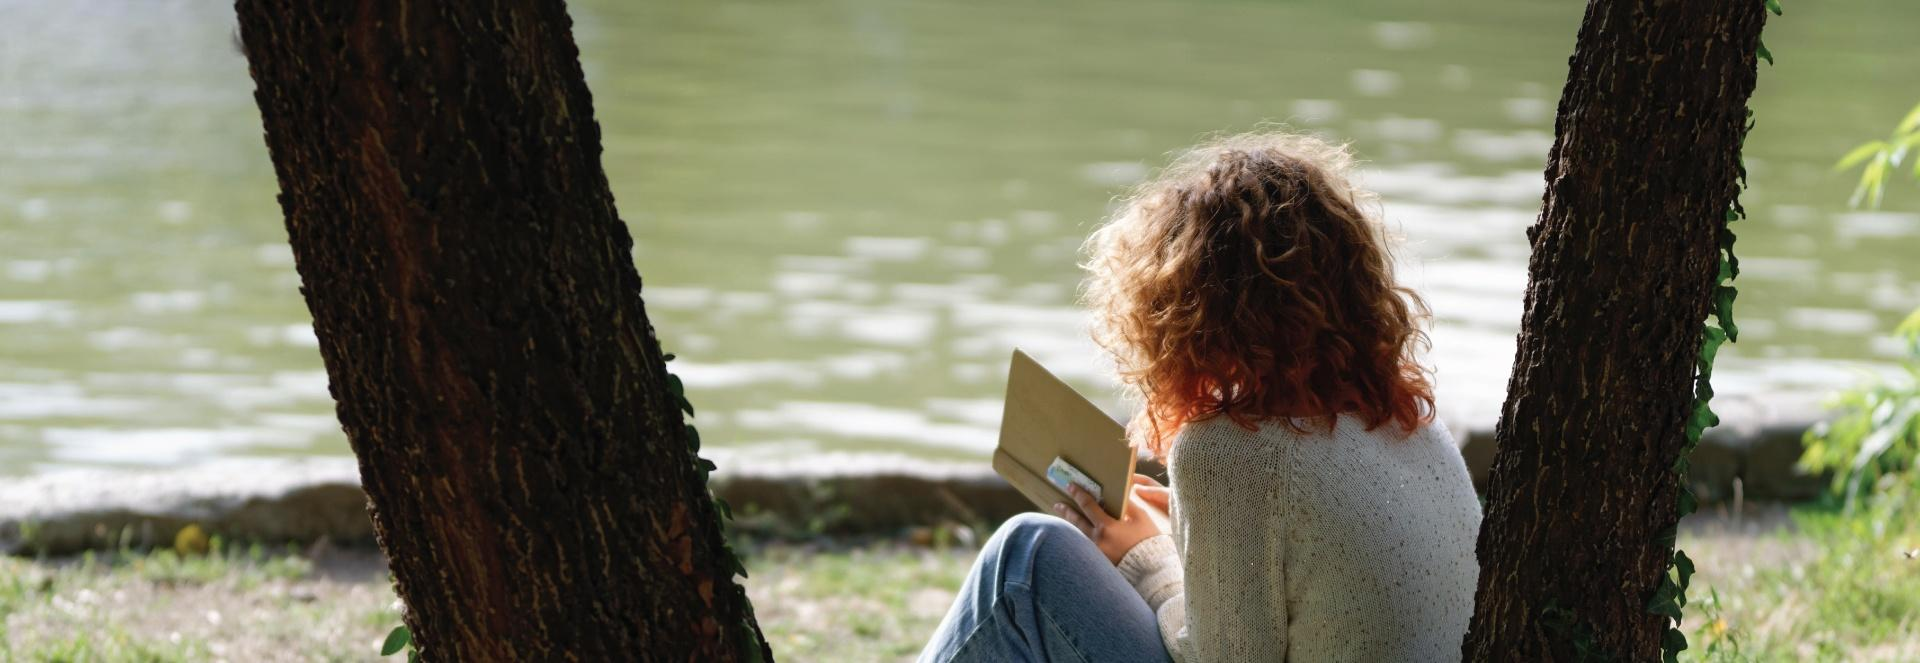 Woman reading a book by a body of water